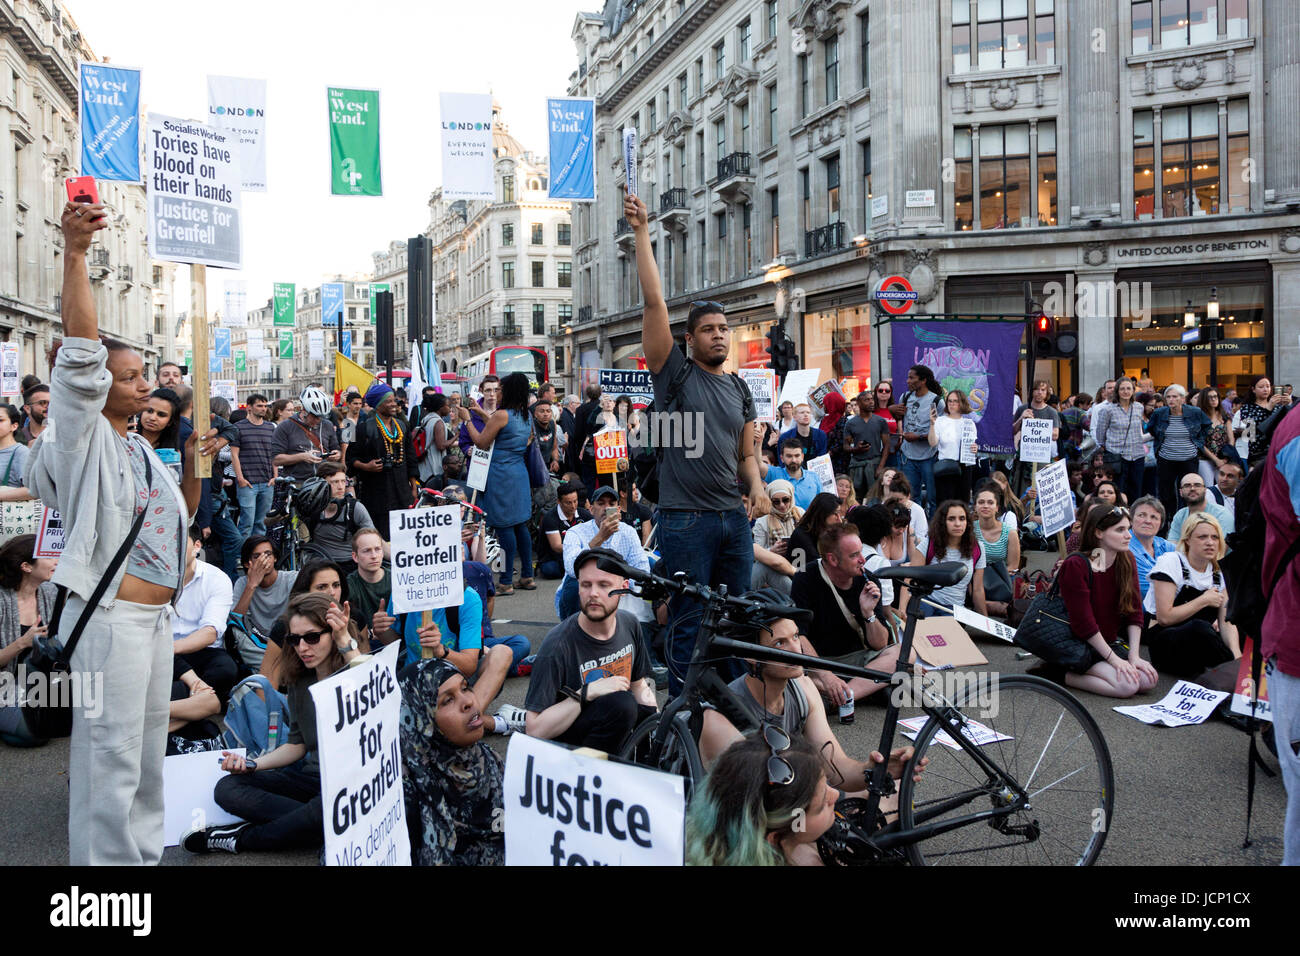 London, UK, 16 June 2017. Protesters at the Justice for Grenfell Protest block Oxford Circus. Protesters call for - Stock Image